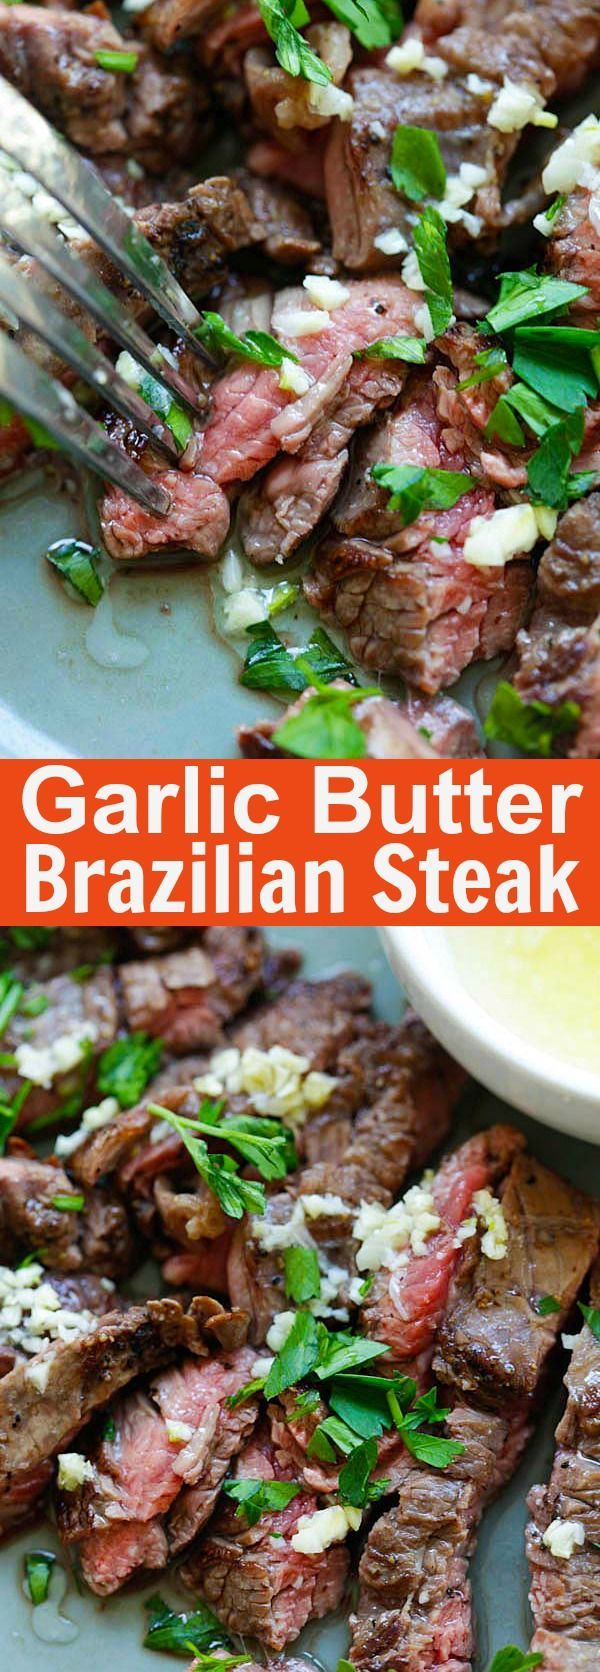 Garlic Butter Brazilian Steak – the juiciest and most tender steak with a golden garlic butter sauce. Takes 15 minutes and dinner is ready.